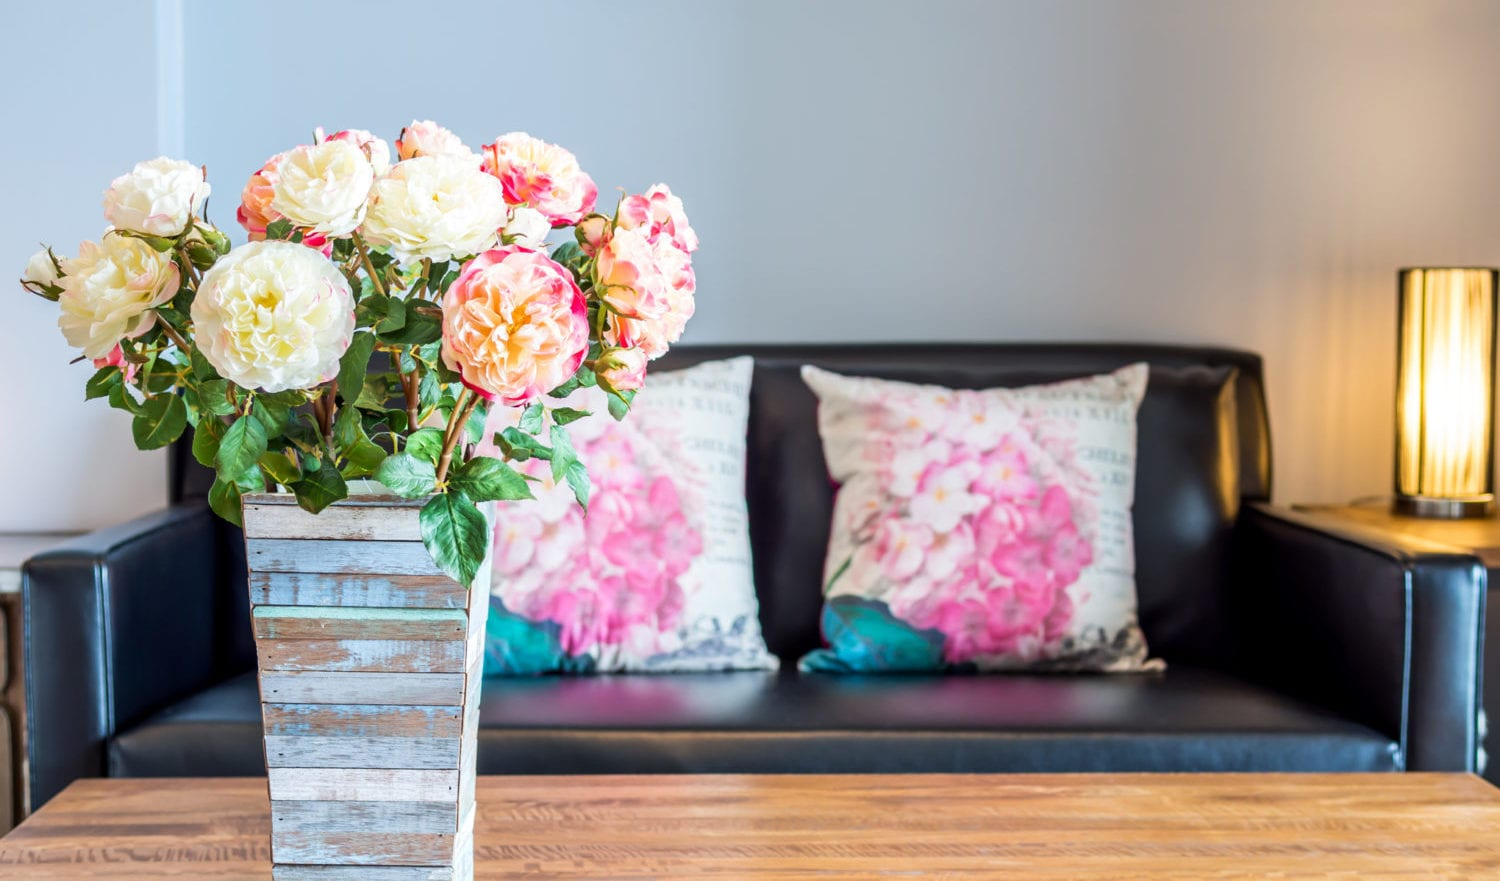 Modern interior room decorated with artificial flowers in rustic wooden vase